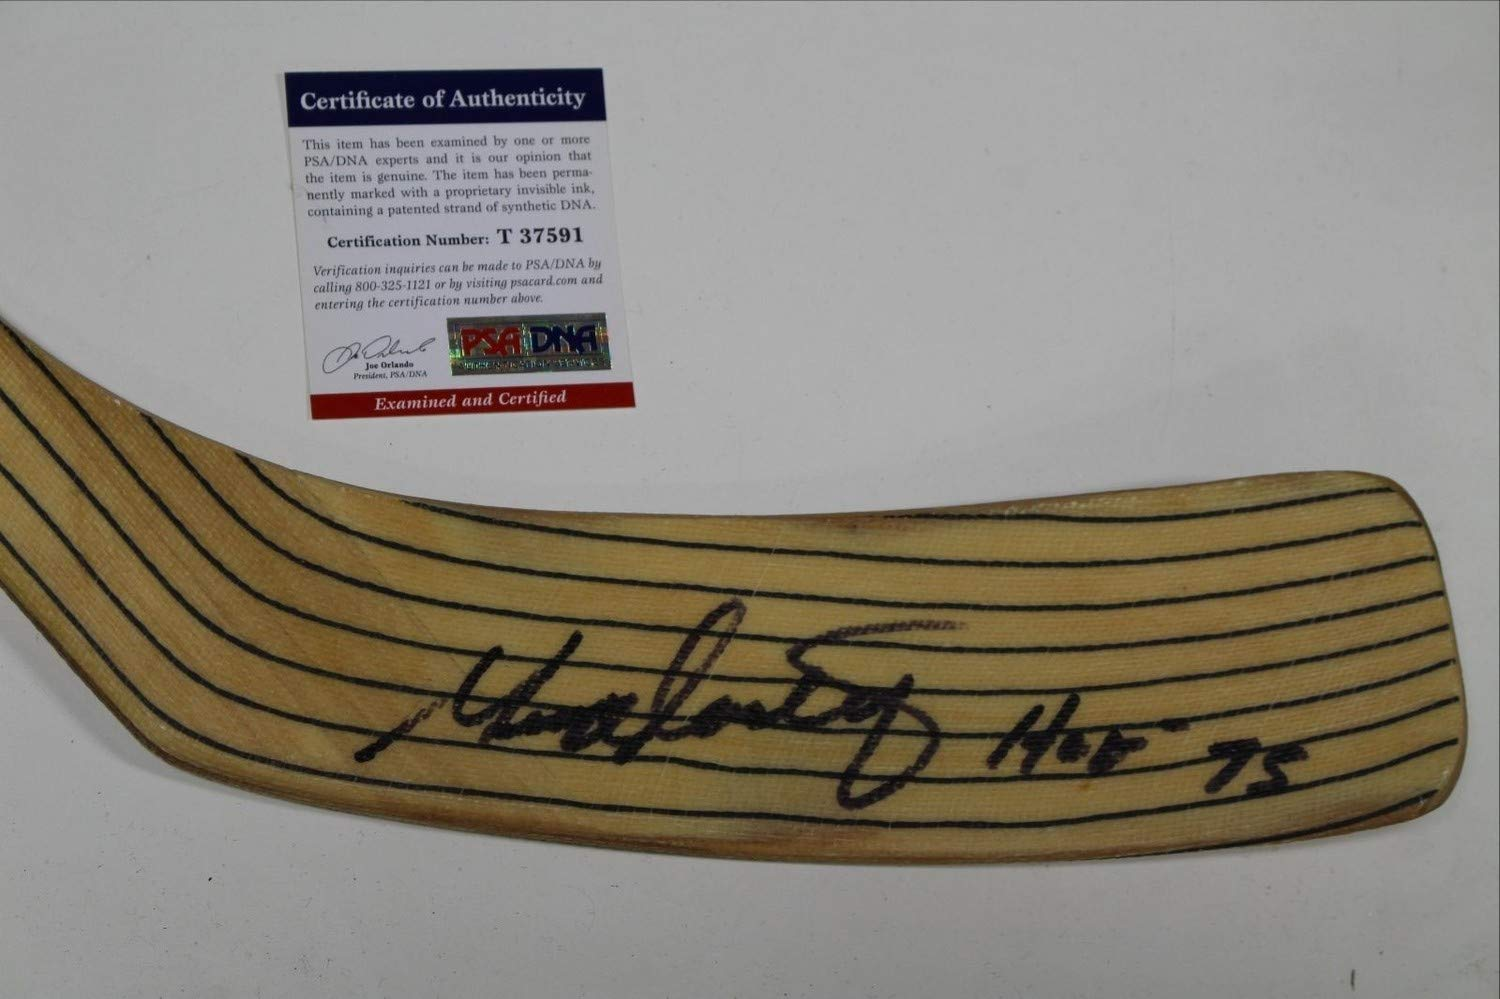 George Armstrong Autographed Signed Hockey Hall Of Fame Full Size Hockey Stick PSA/DNA Authentic